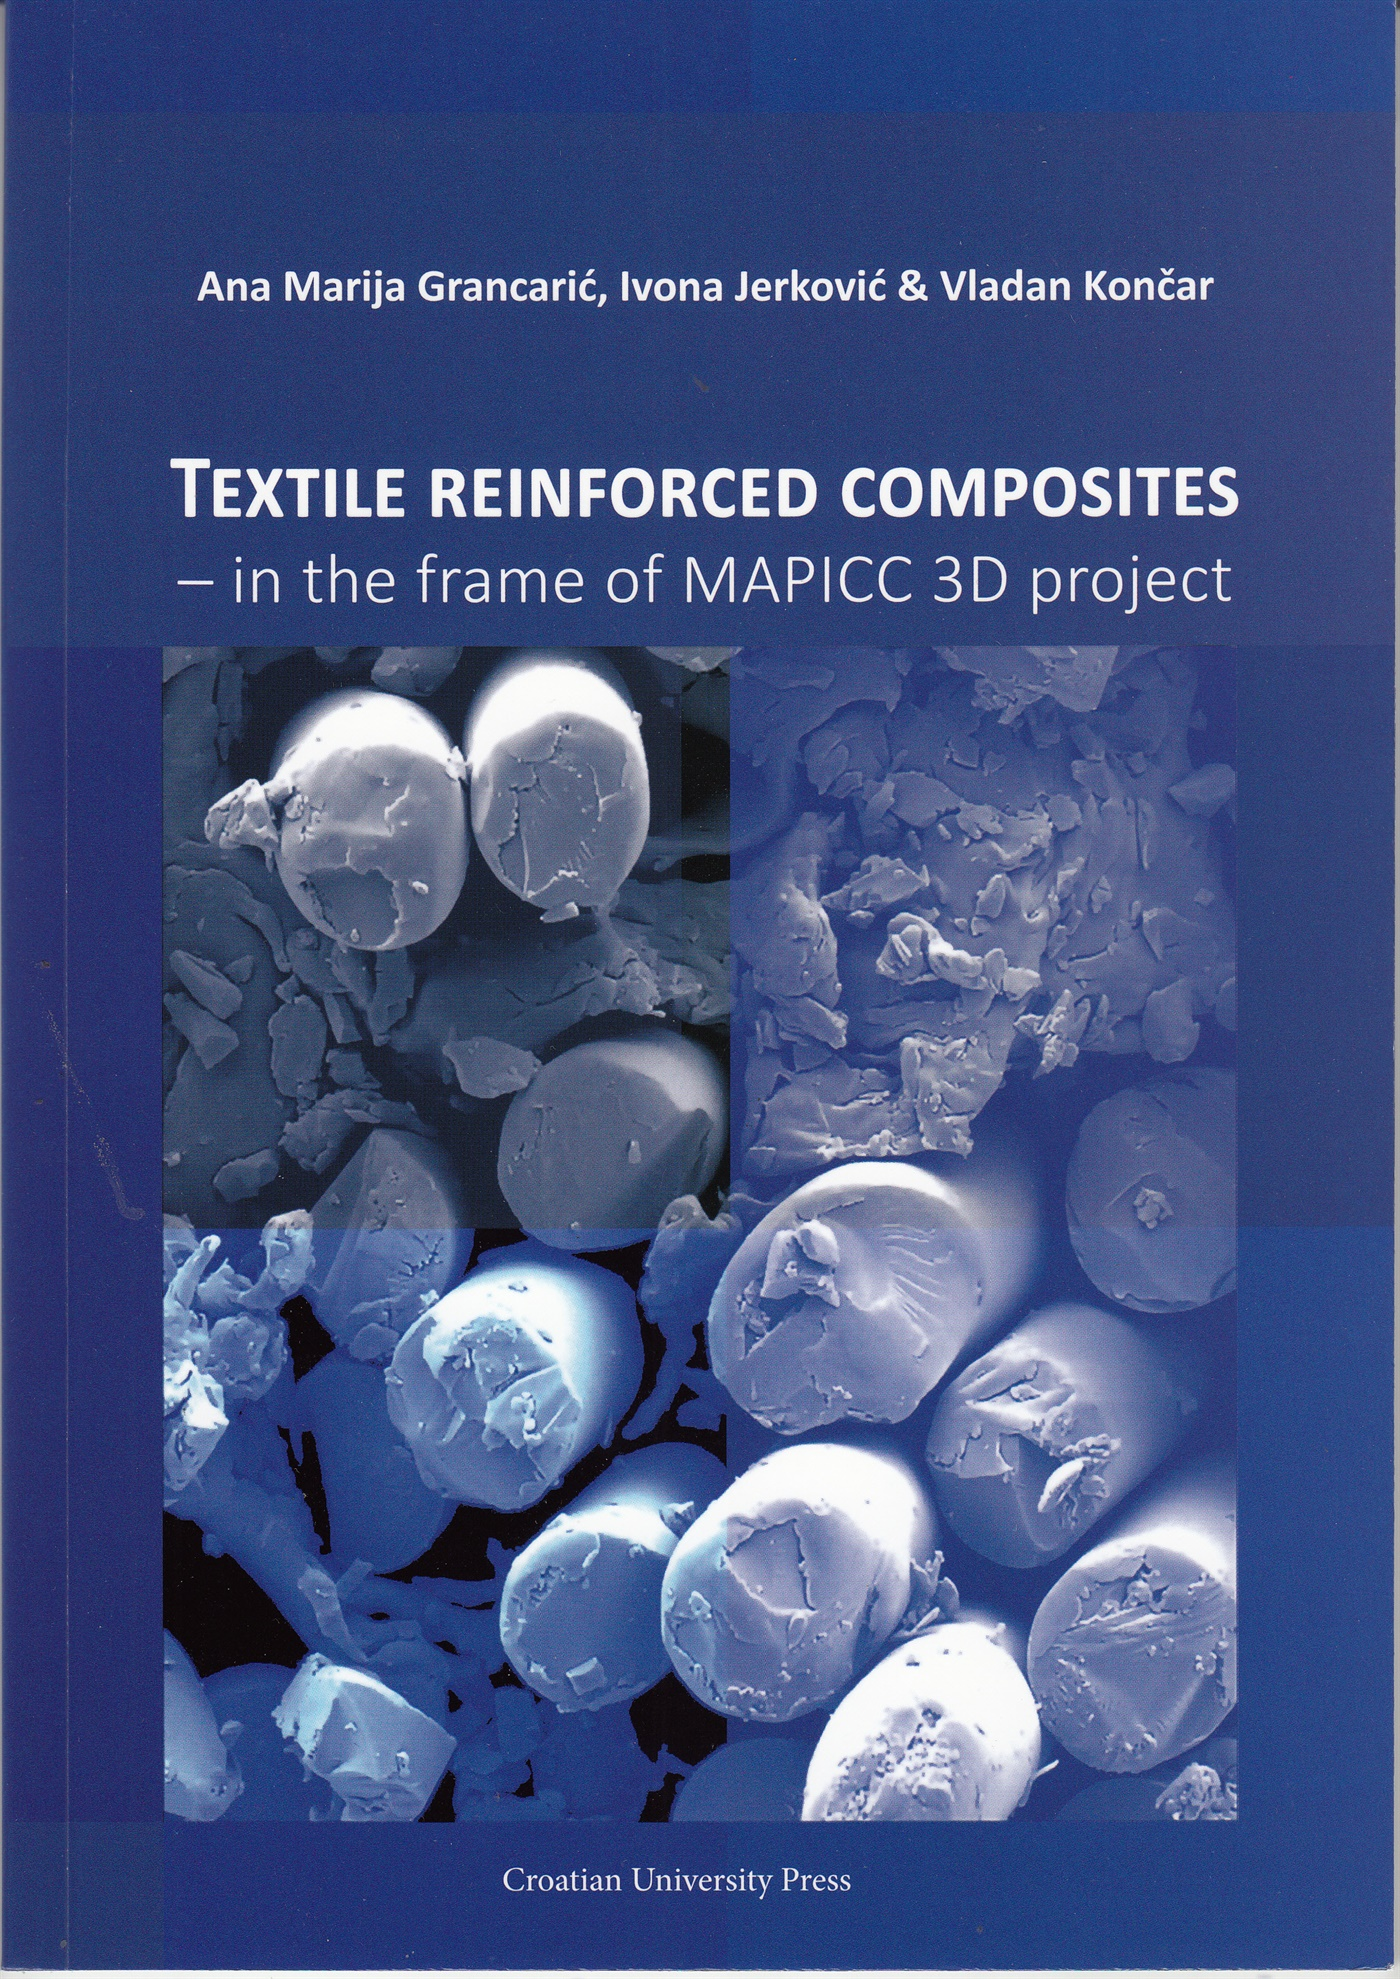 TEXTILE REINFORCED COMPOSITES – in the frame of MAPICC 3D project